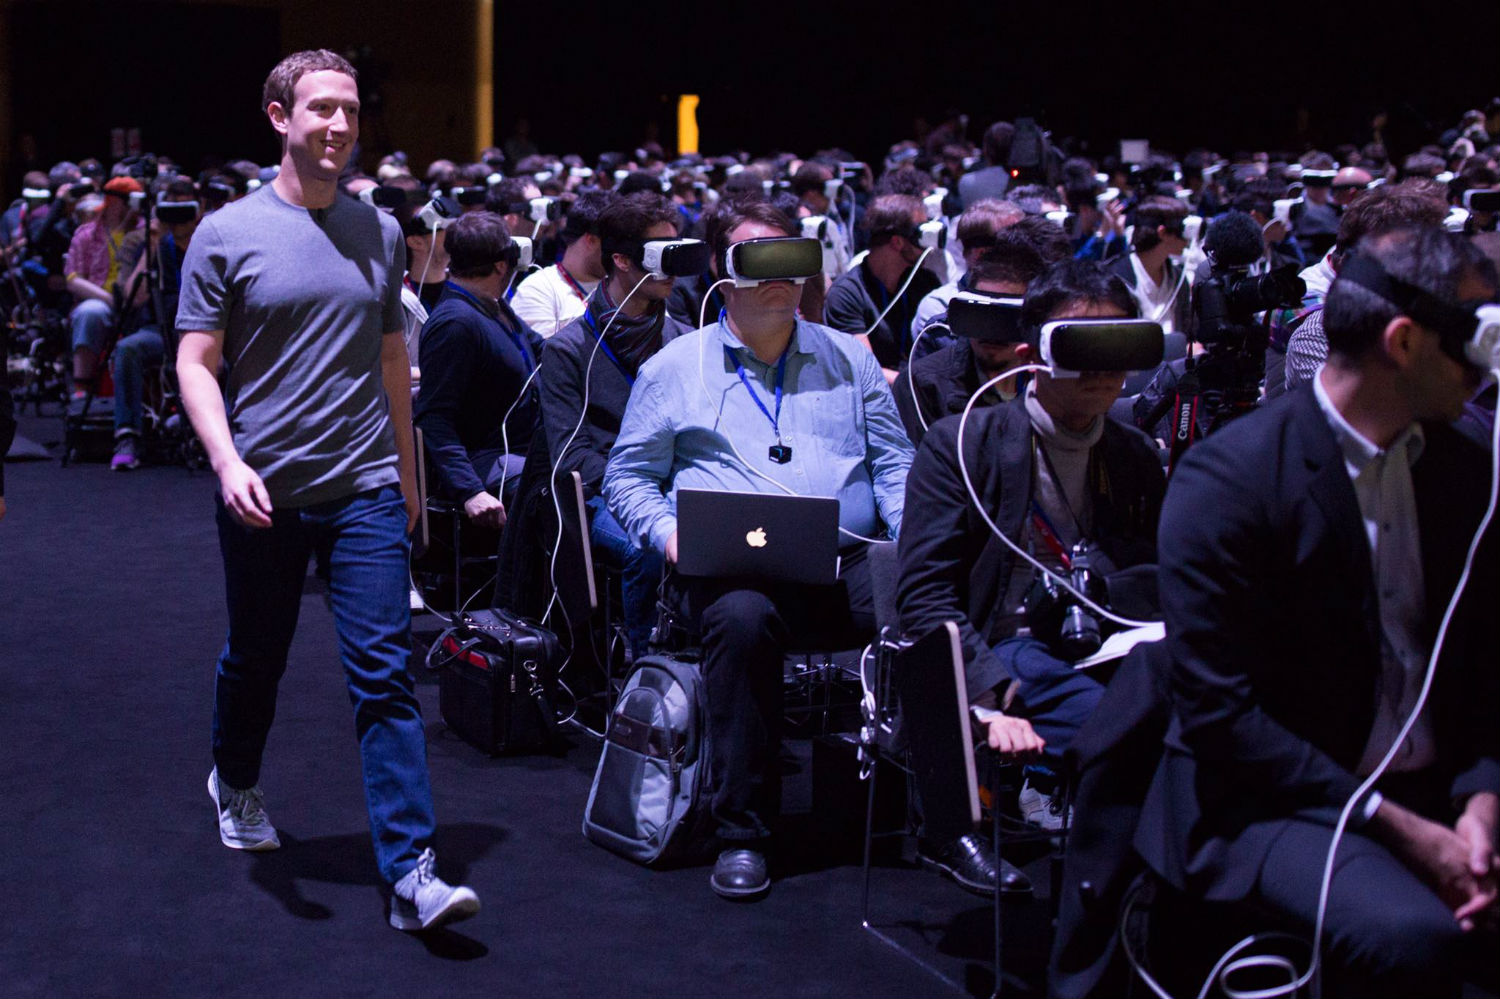 zuckerberg rows